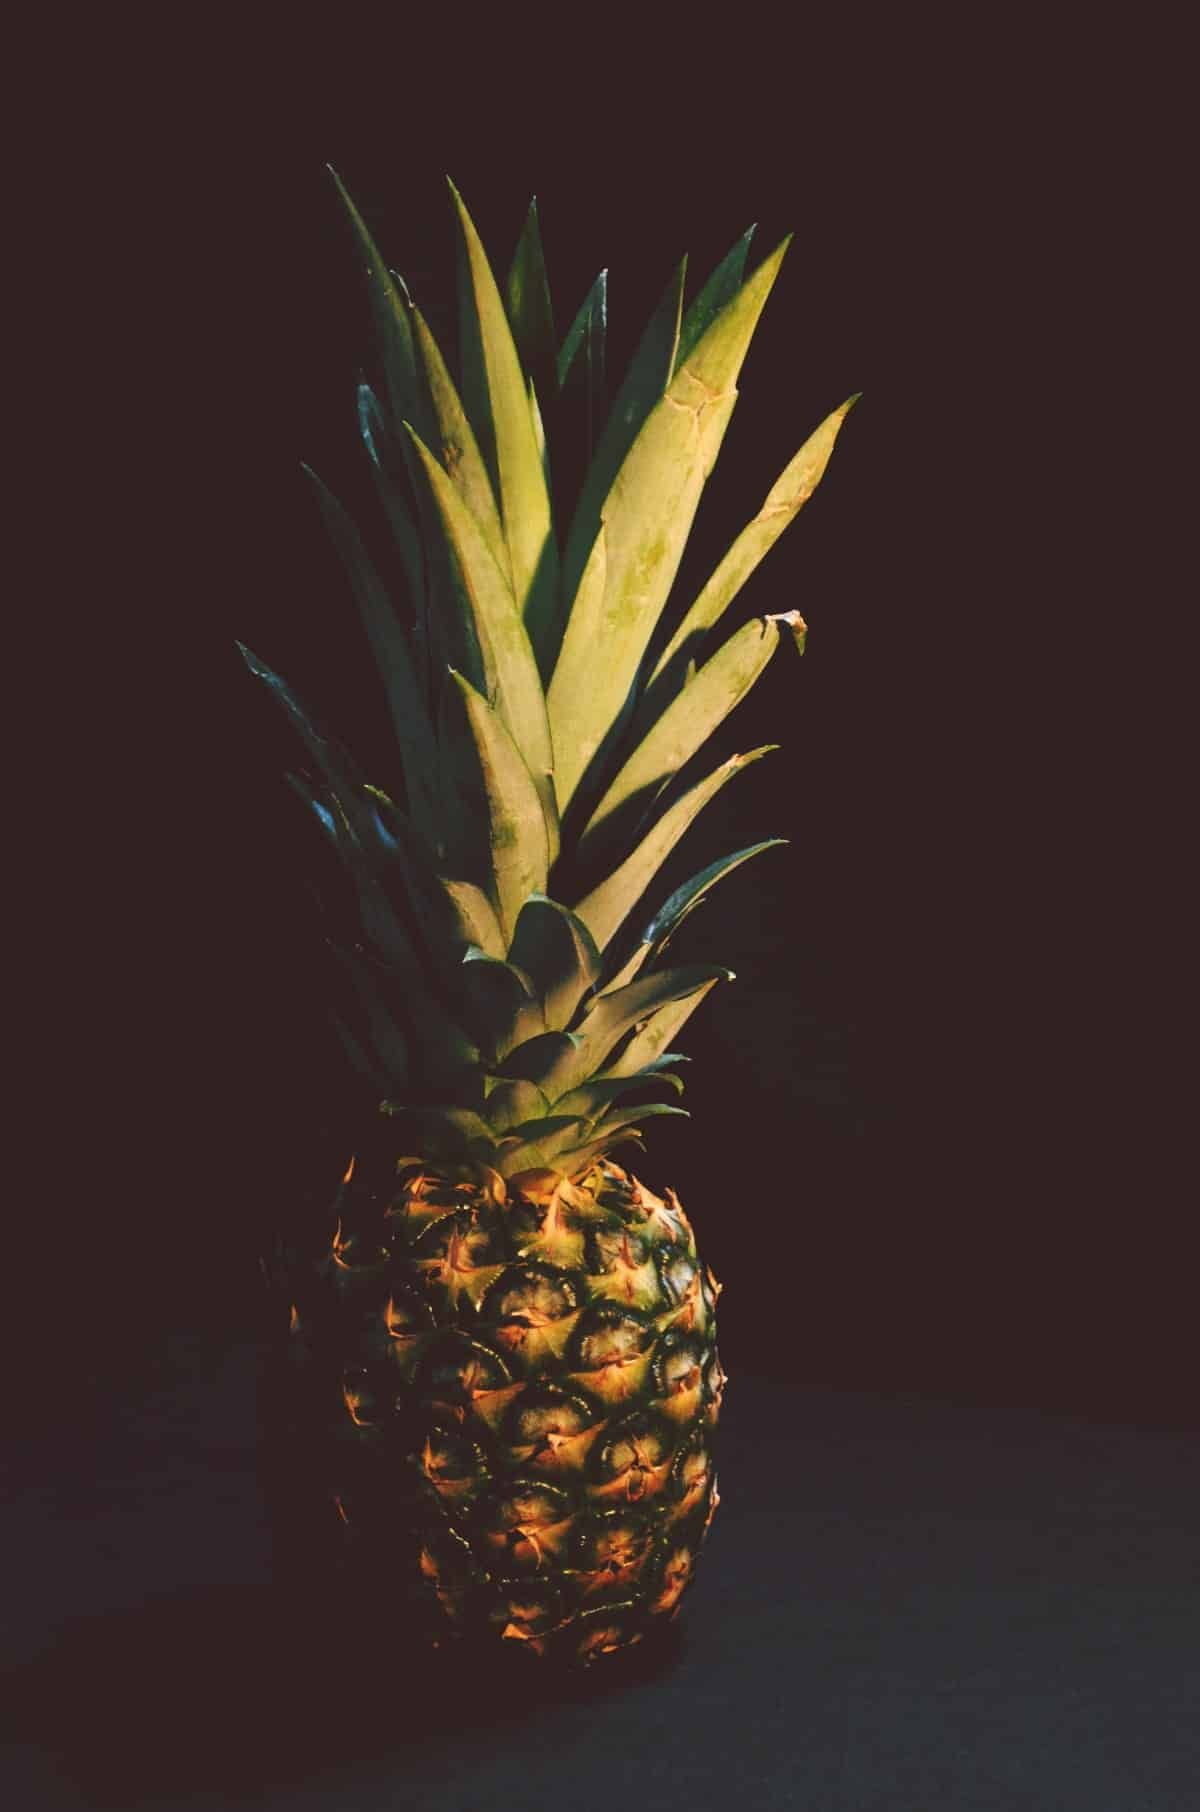 30 Of The Sweetest Desktop And Smartphone Pineapple Wallpapers Inspirationfeed Pineapple Wallpaper Pineapple Backgrounds Cute Pineapple Wallpaper